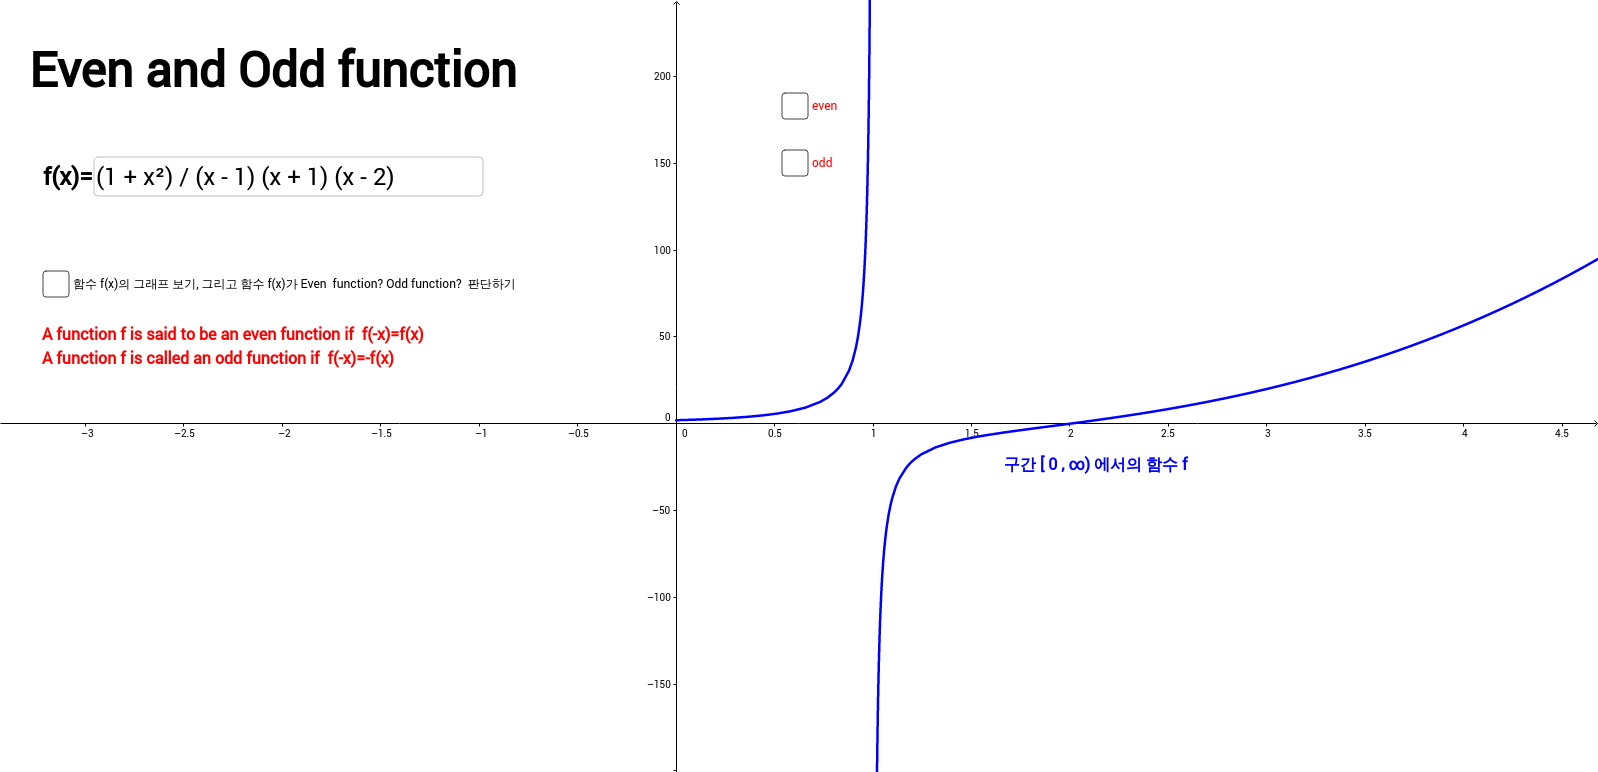 Even and Odd function